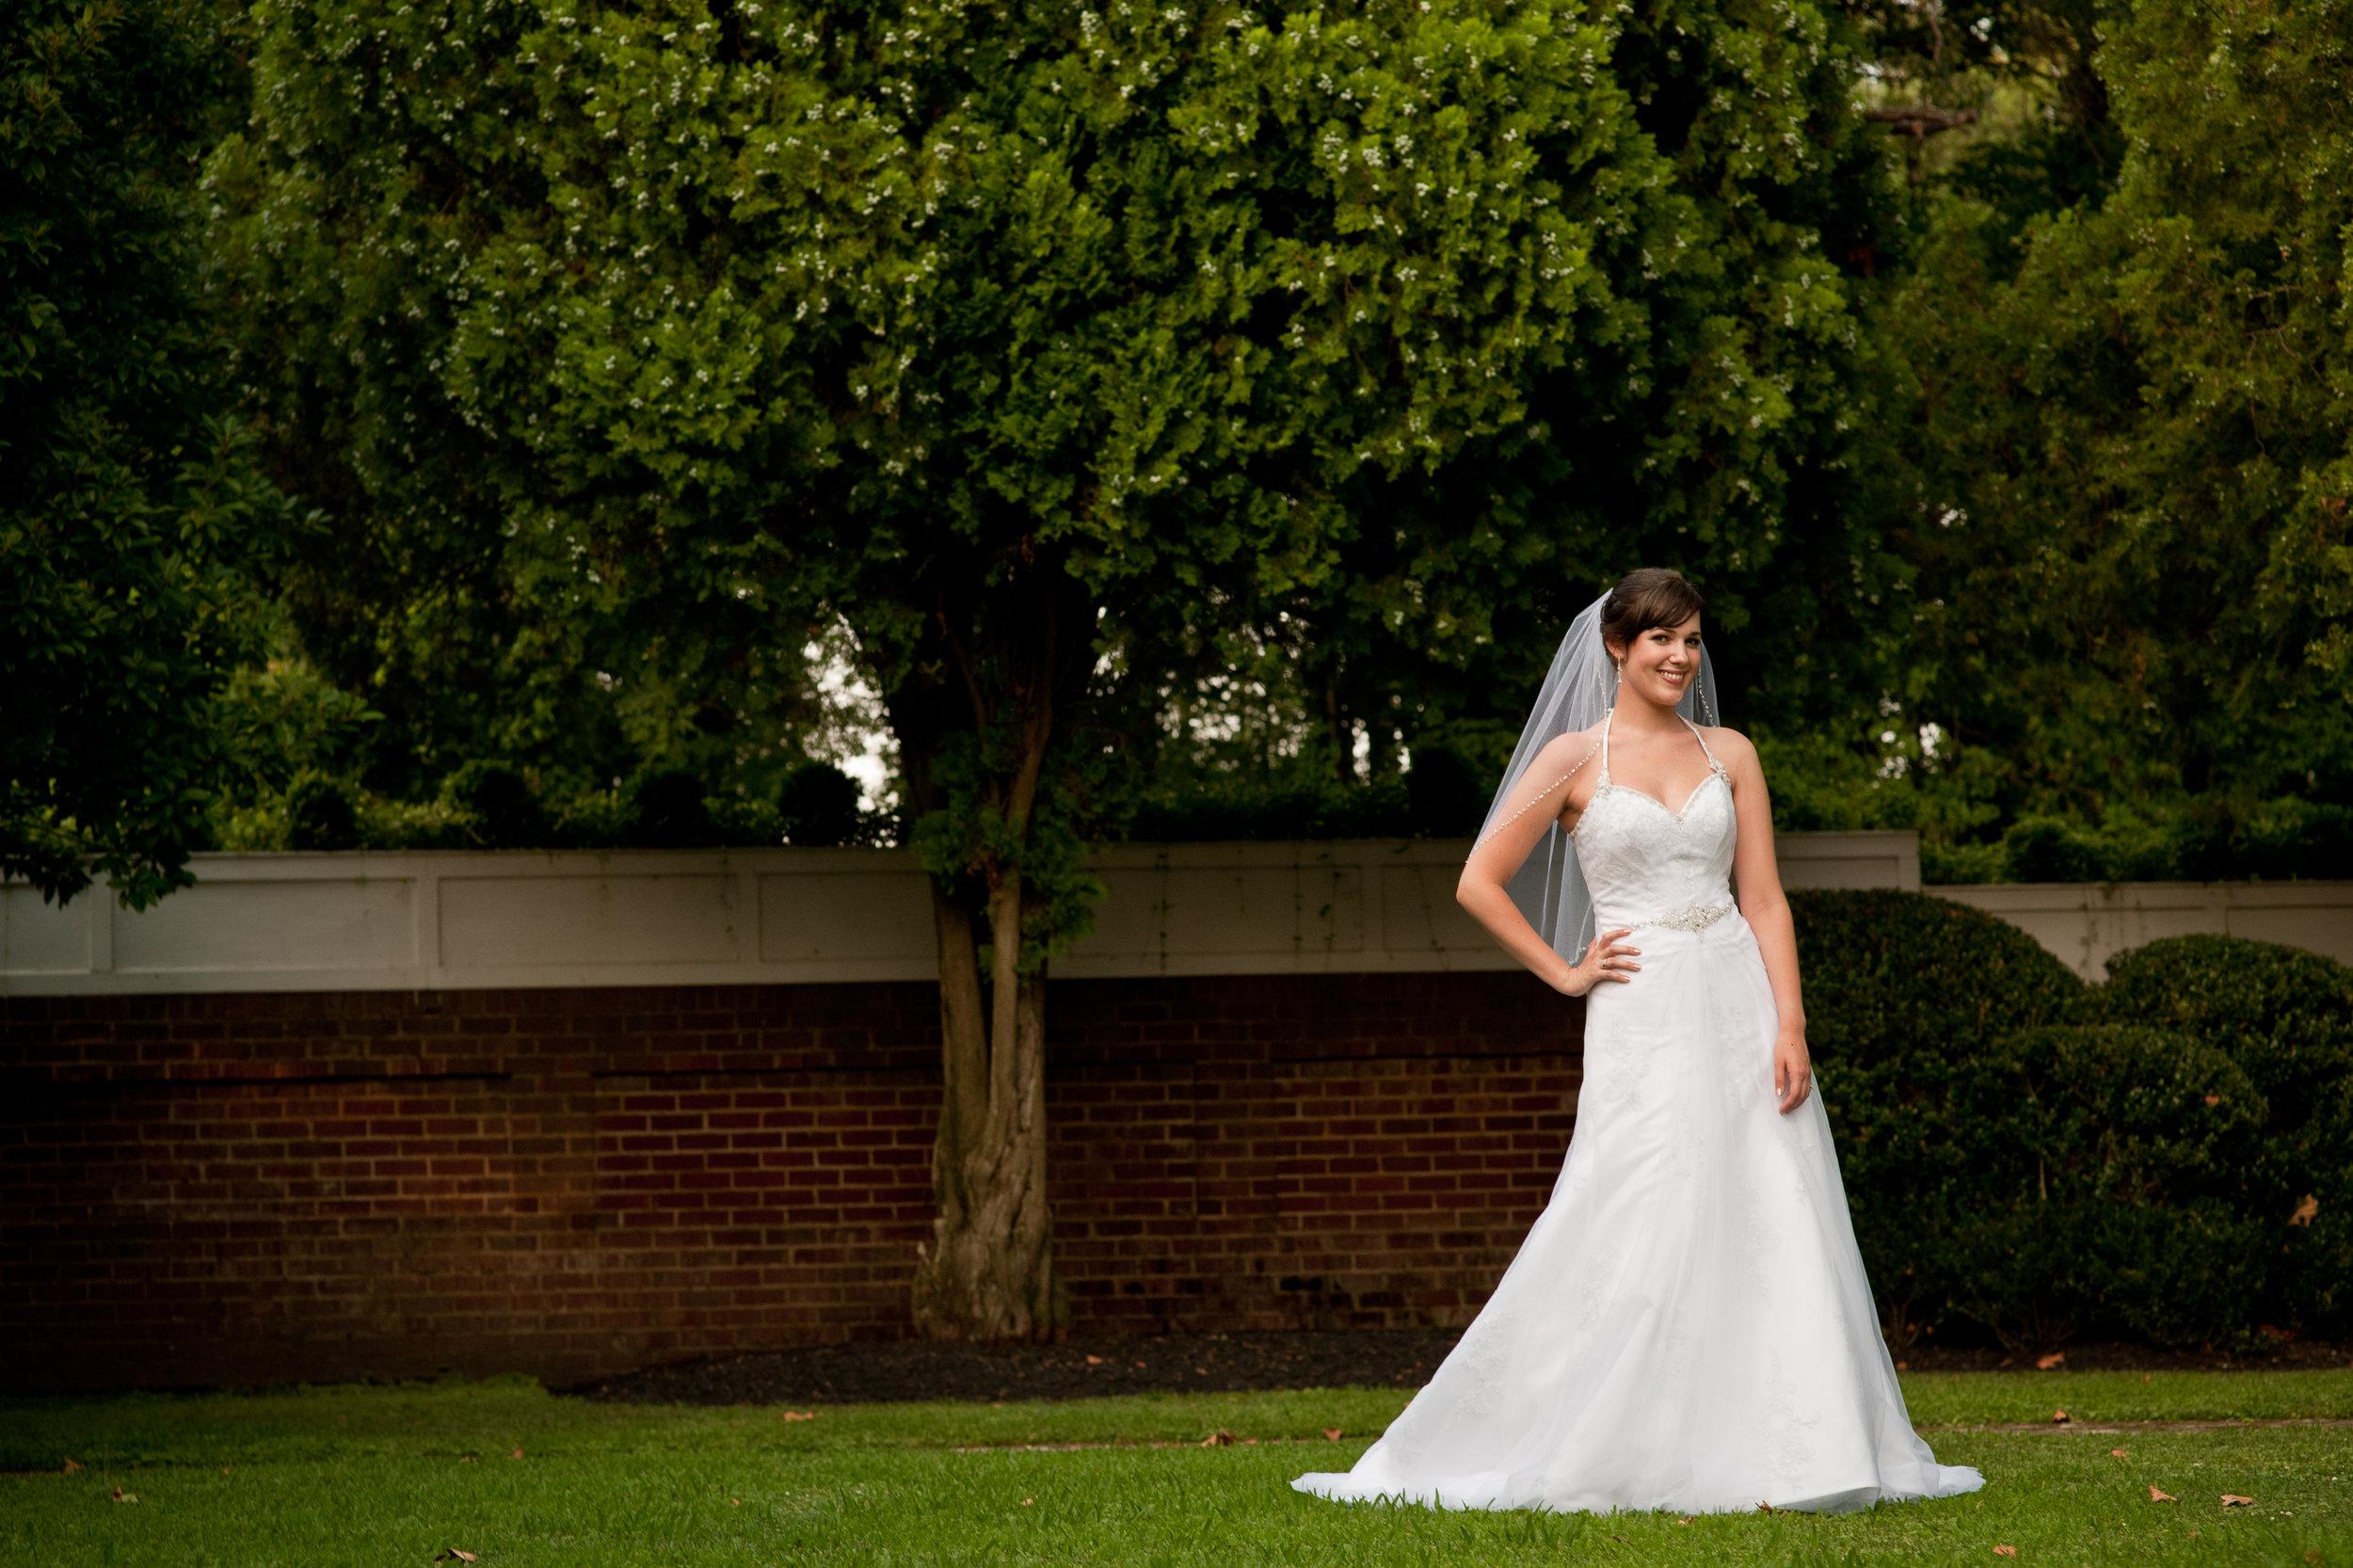 Richmond-Va-Bride-Mankin-Mansion.jpg